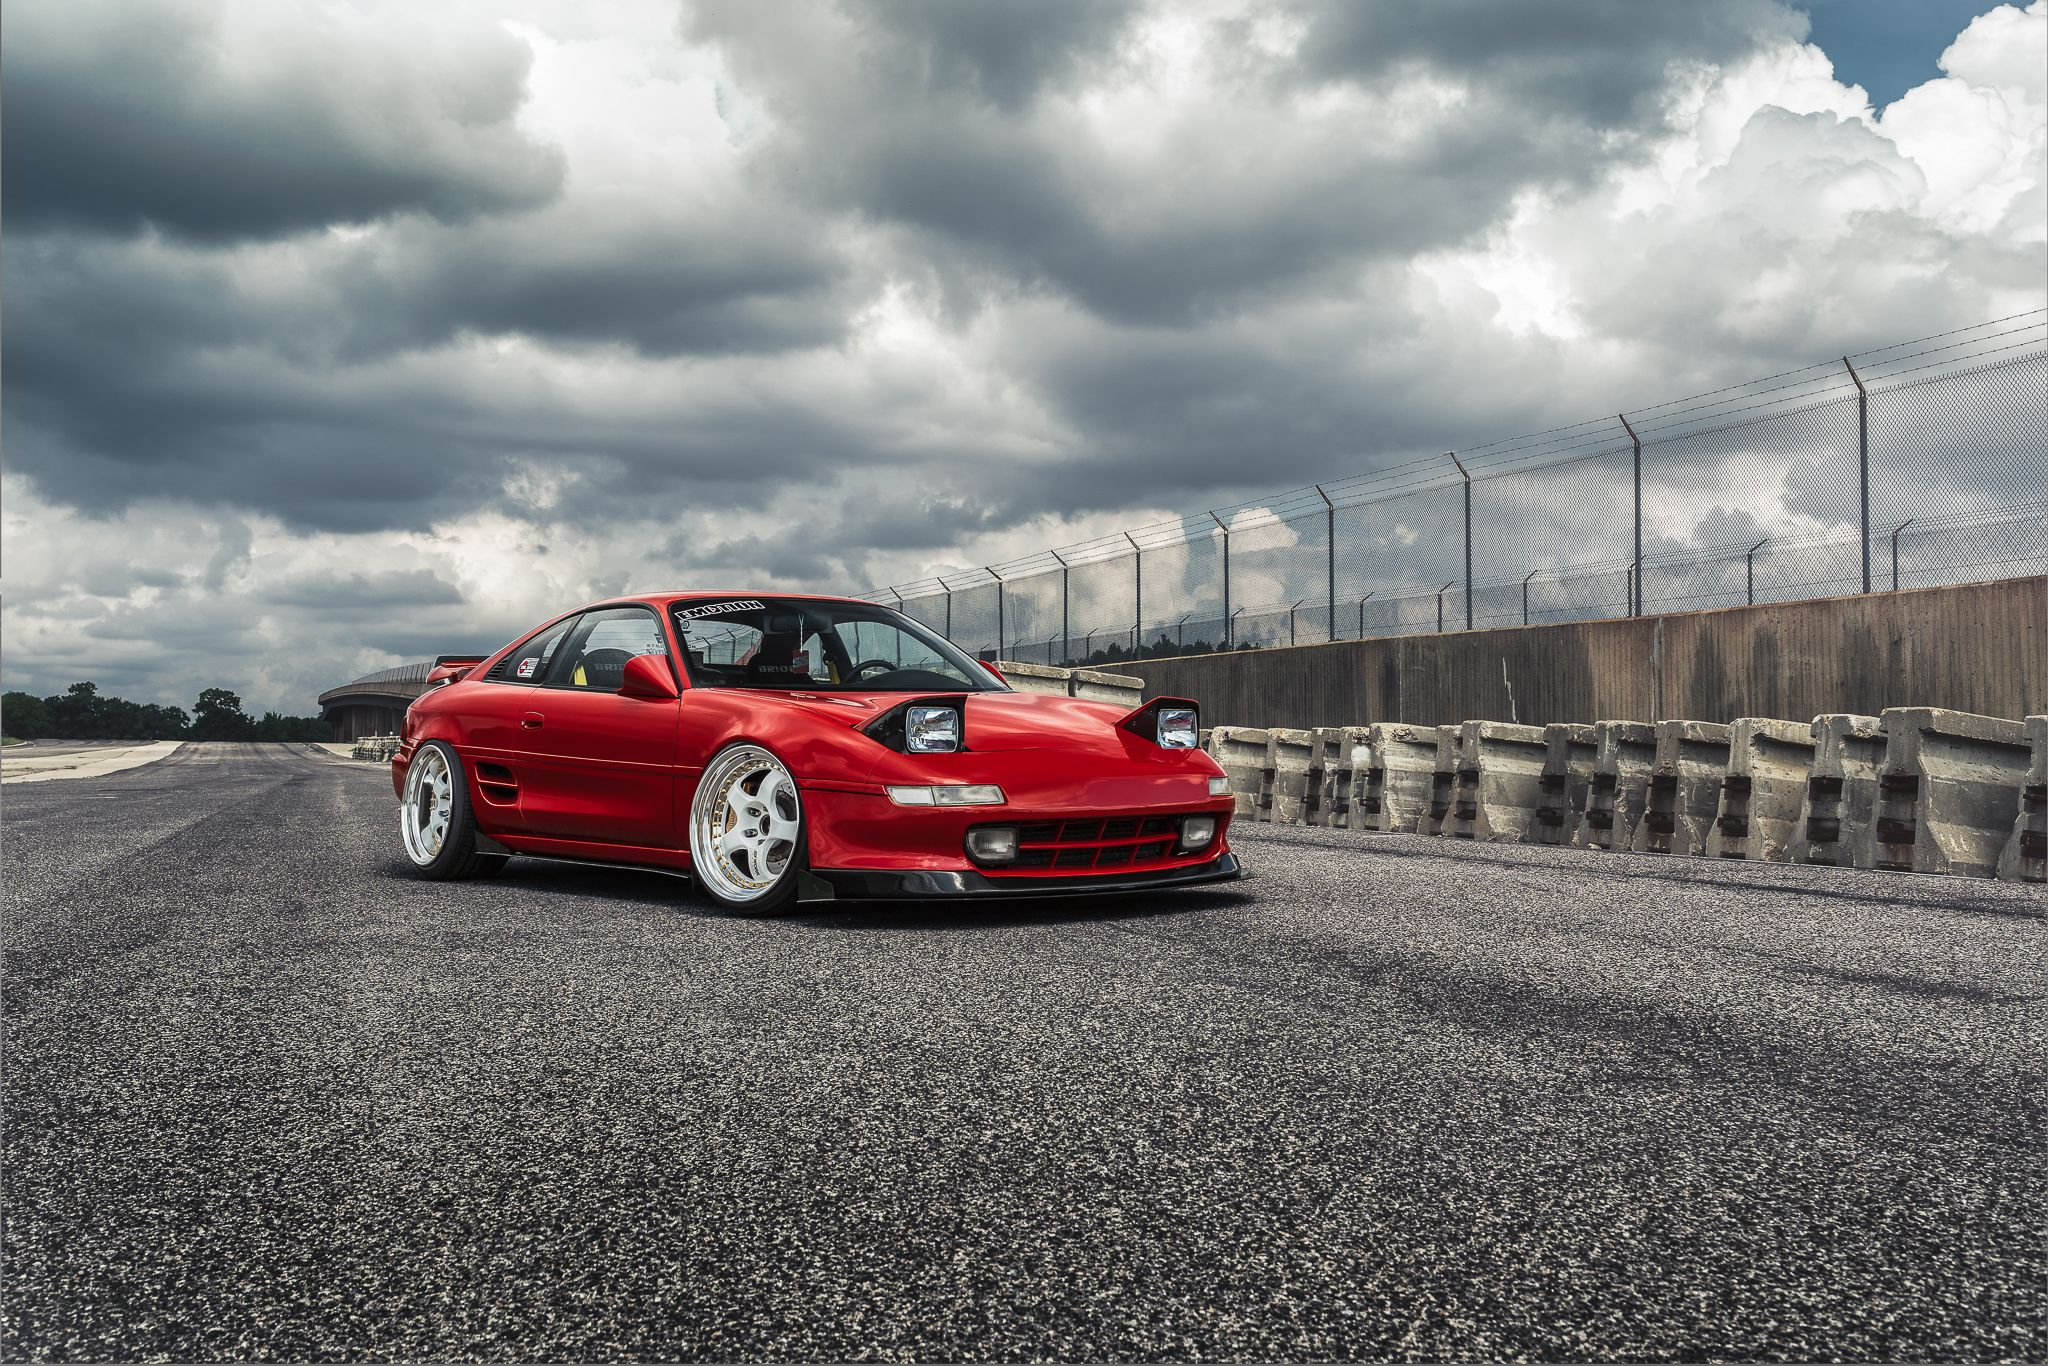 MR2 at race